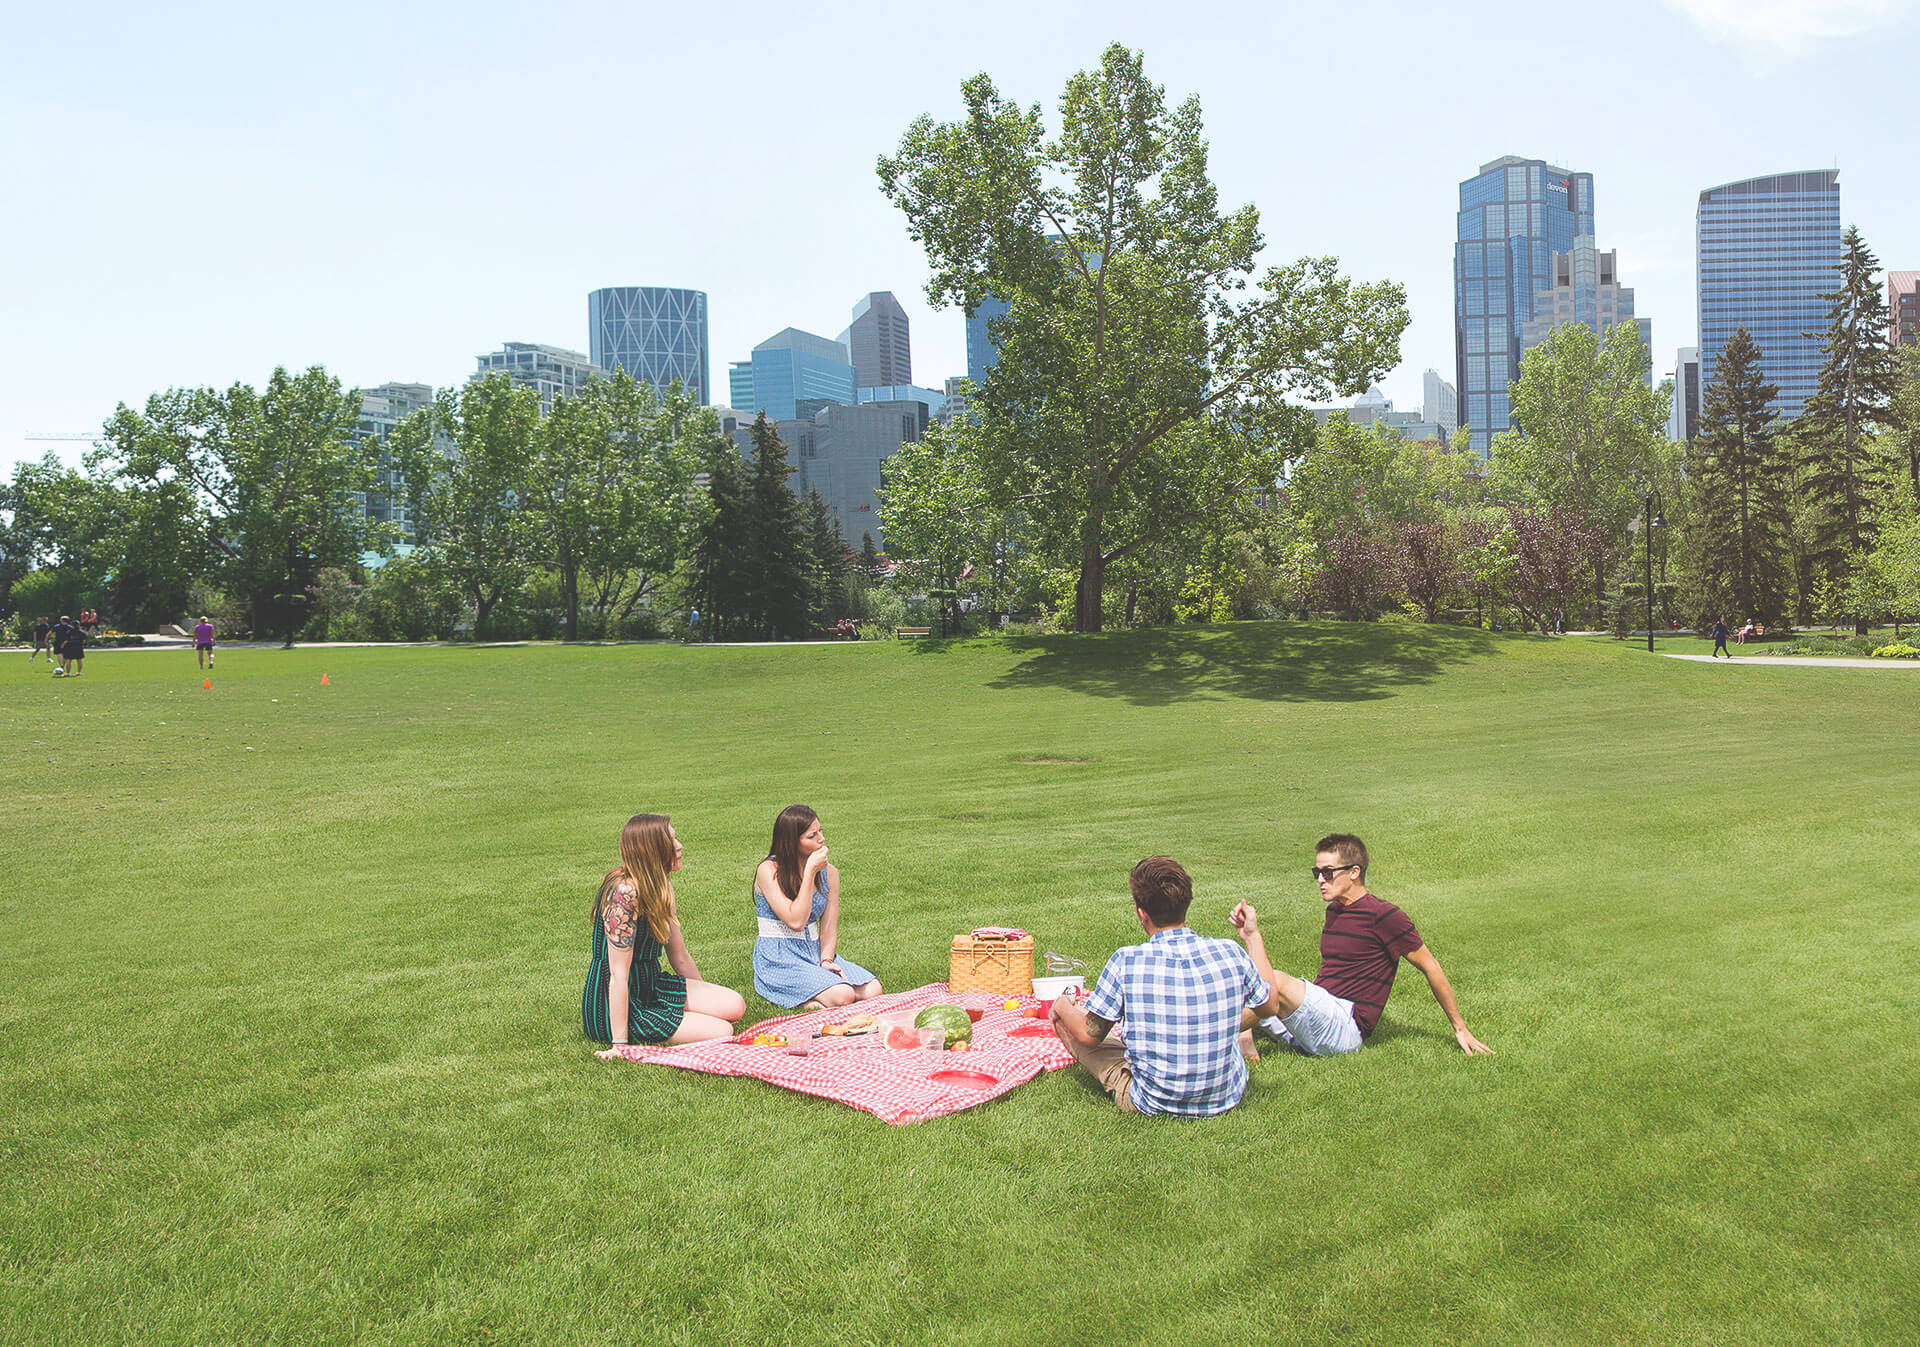 Summer picnic at a Calgary Park